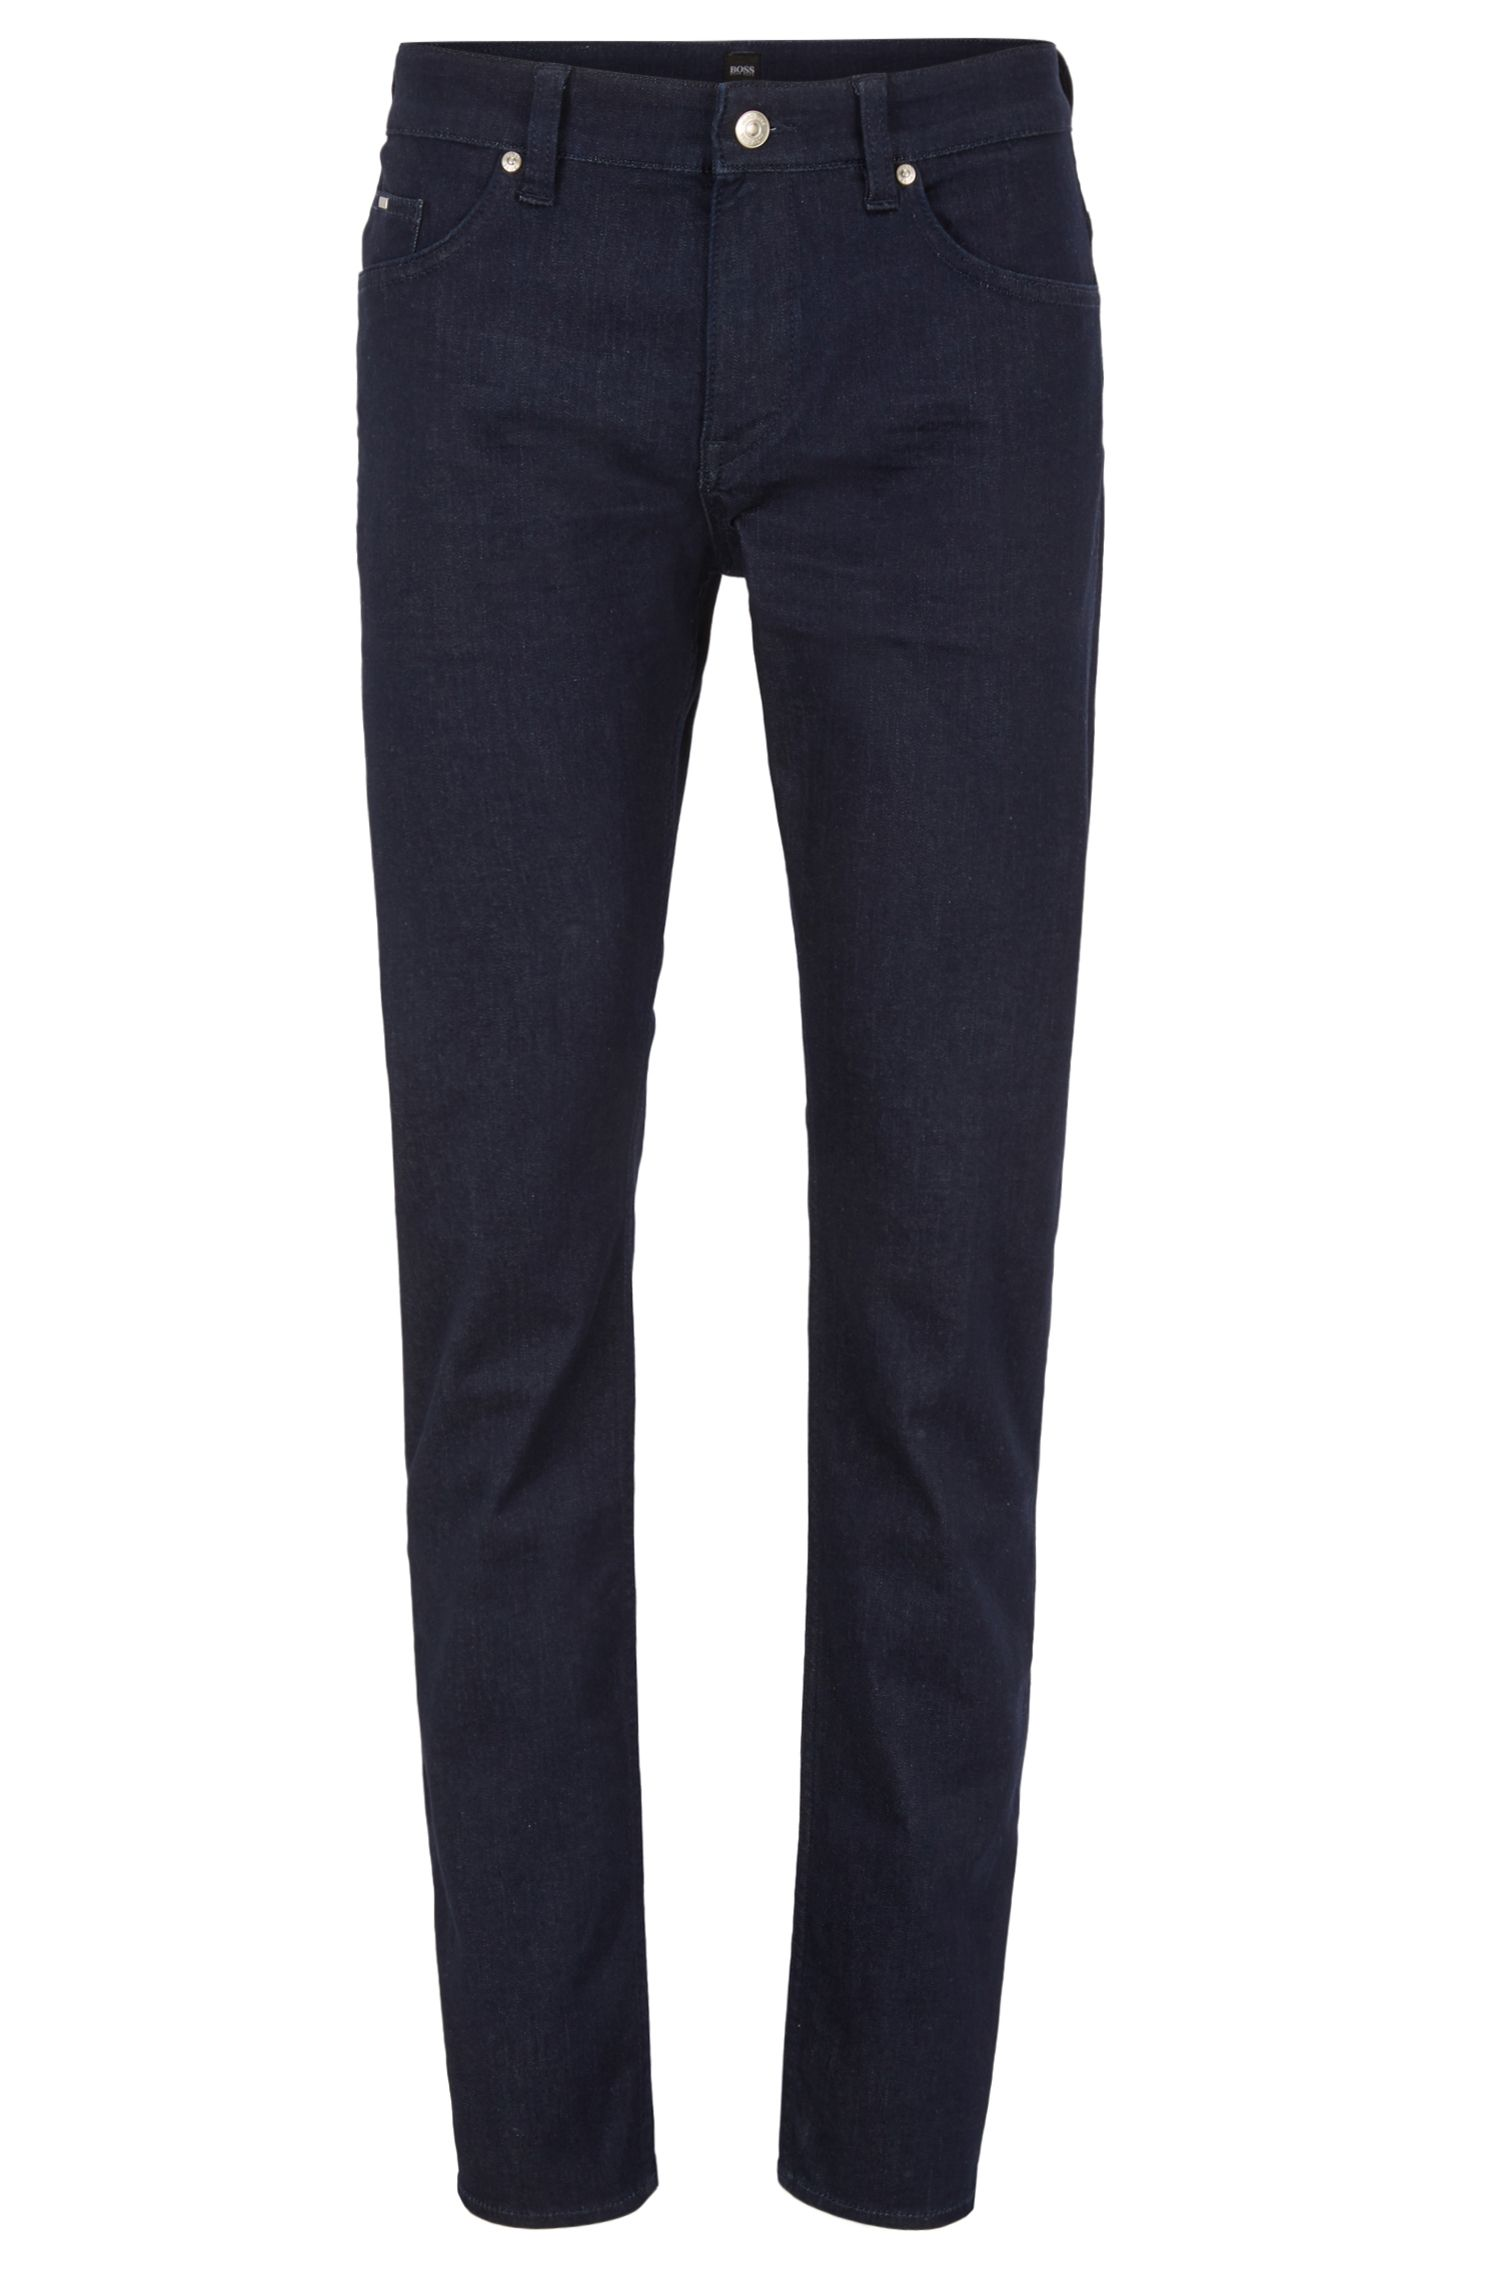 Jean Slim Fit en denim stretch confortable bleu foncé